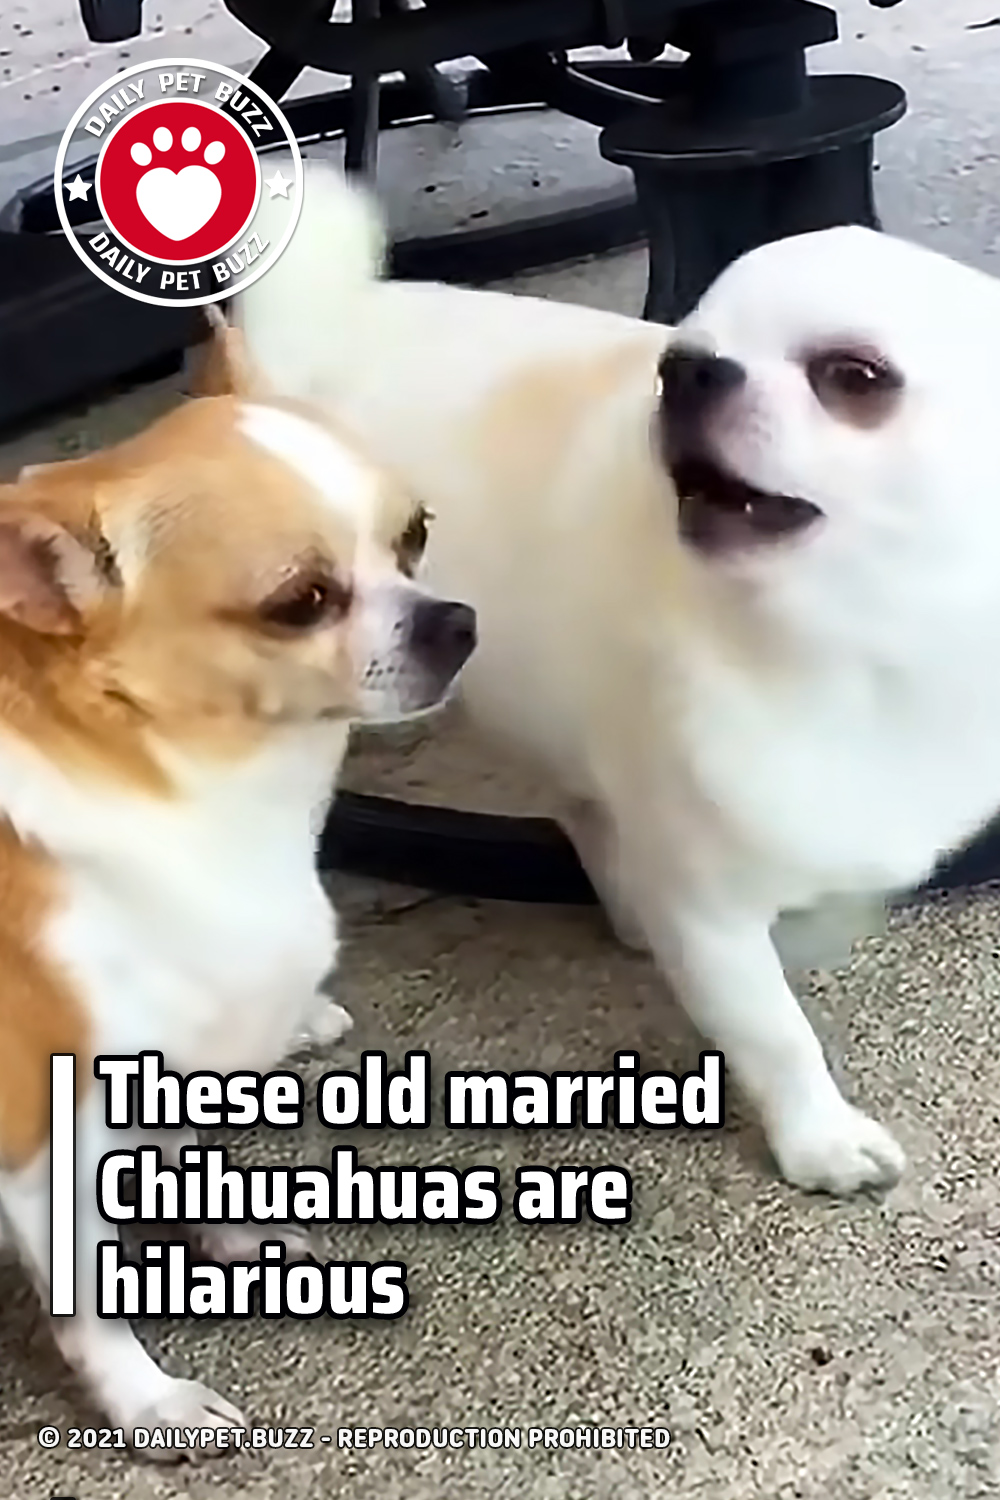 These old married Chihuahuas are hilarious